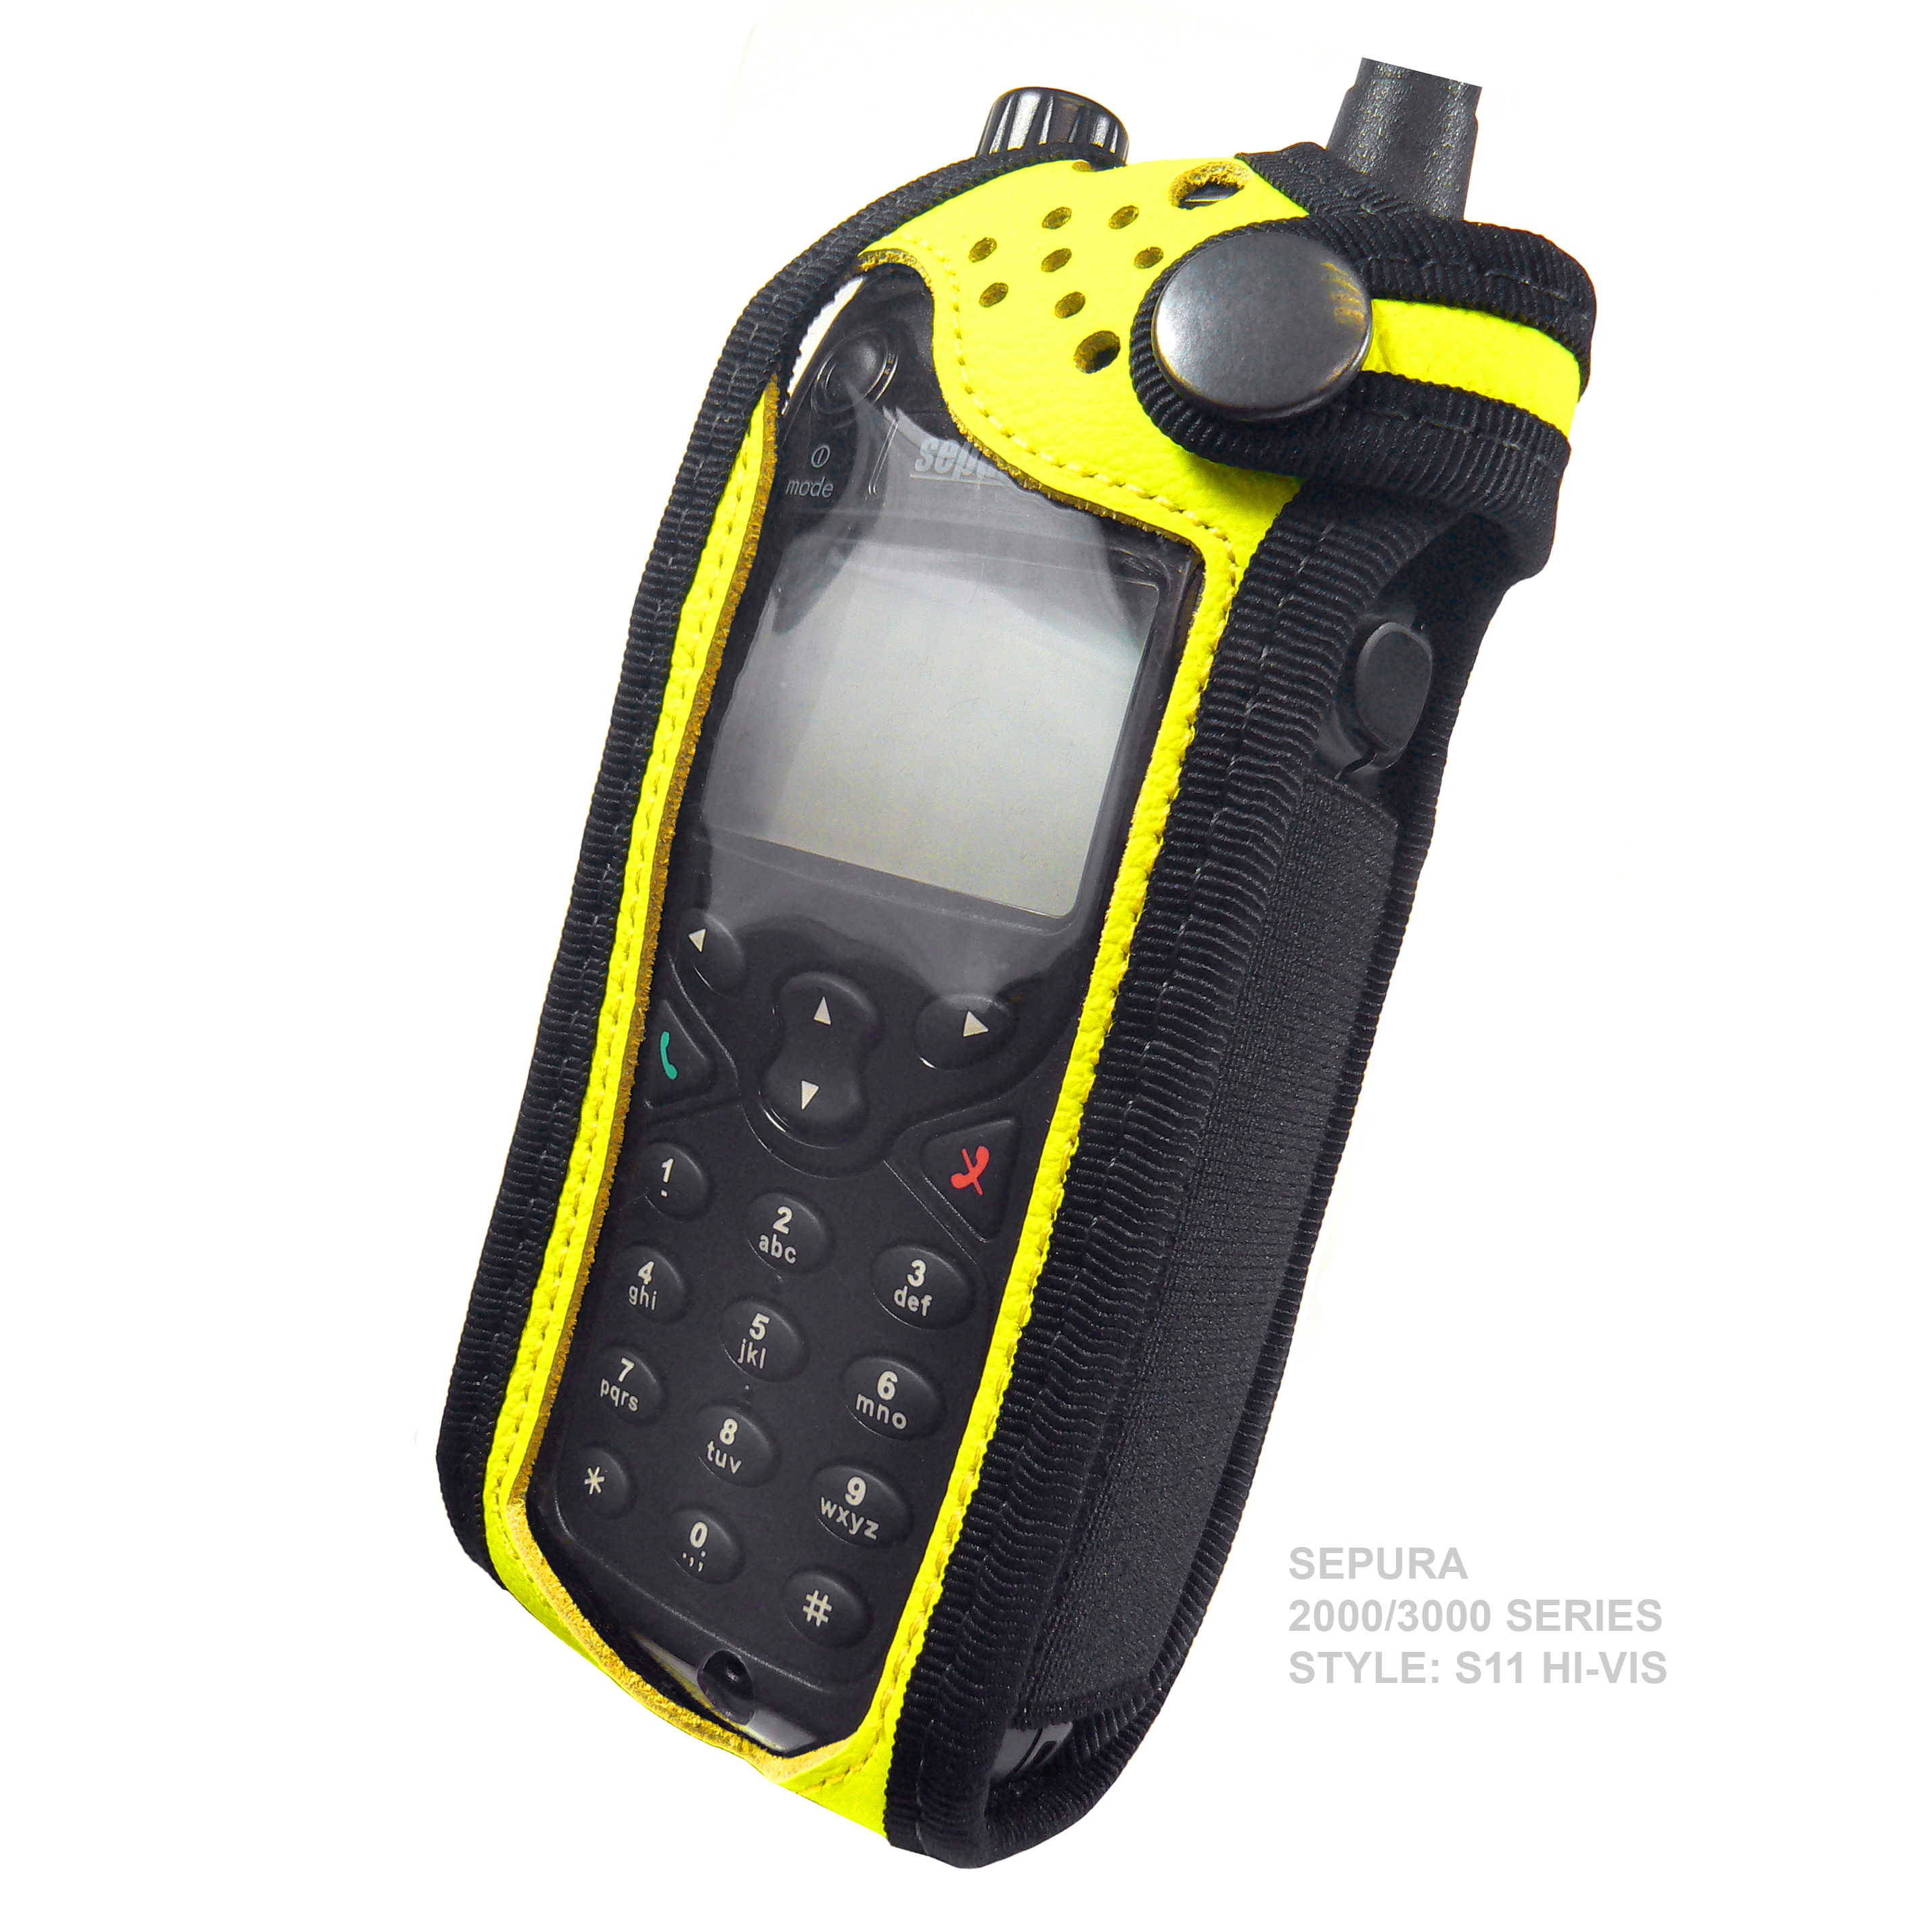 Sepura SRP3000 Tetra Radio Case Hi-Vis Yellow Leather with Click-On